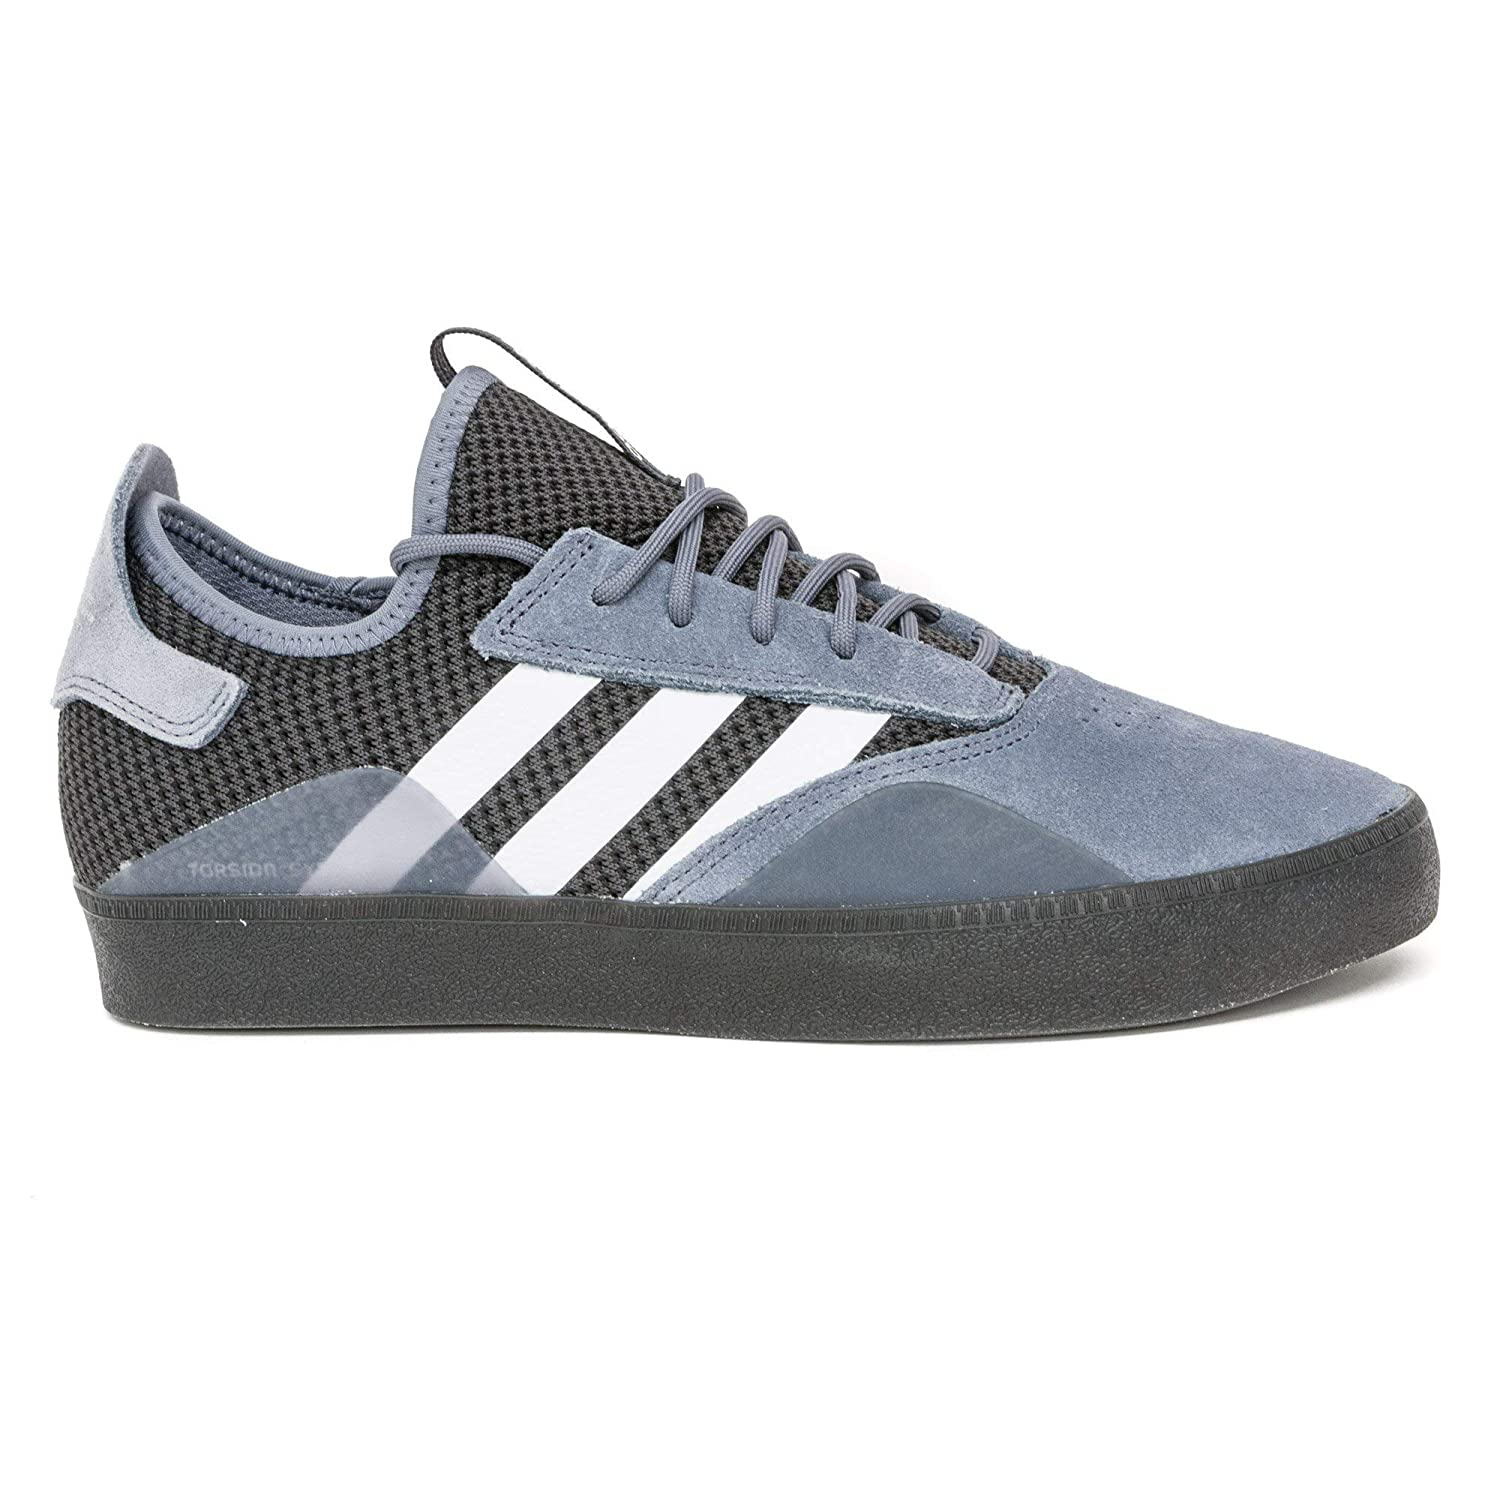 adidas 3st homme chaussures